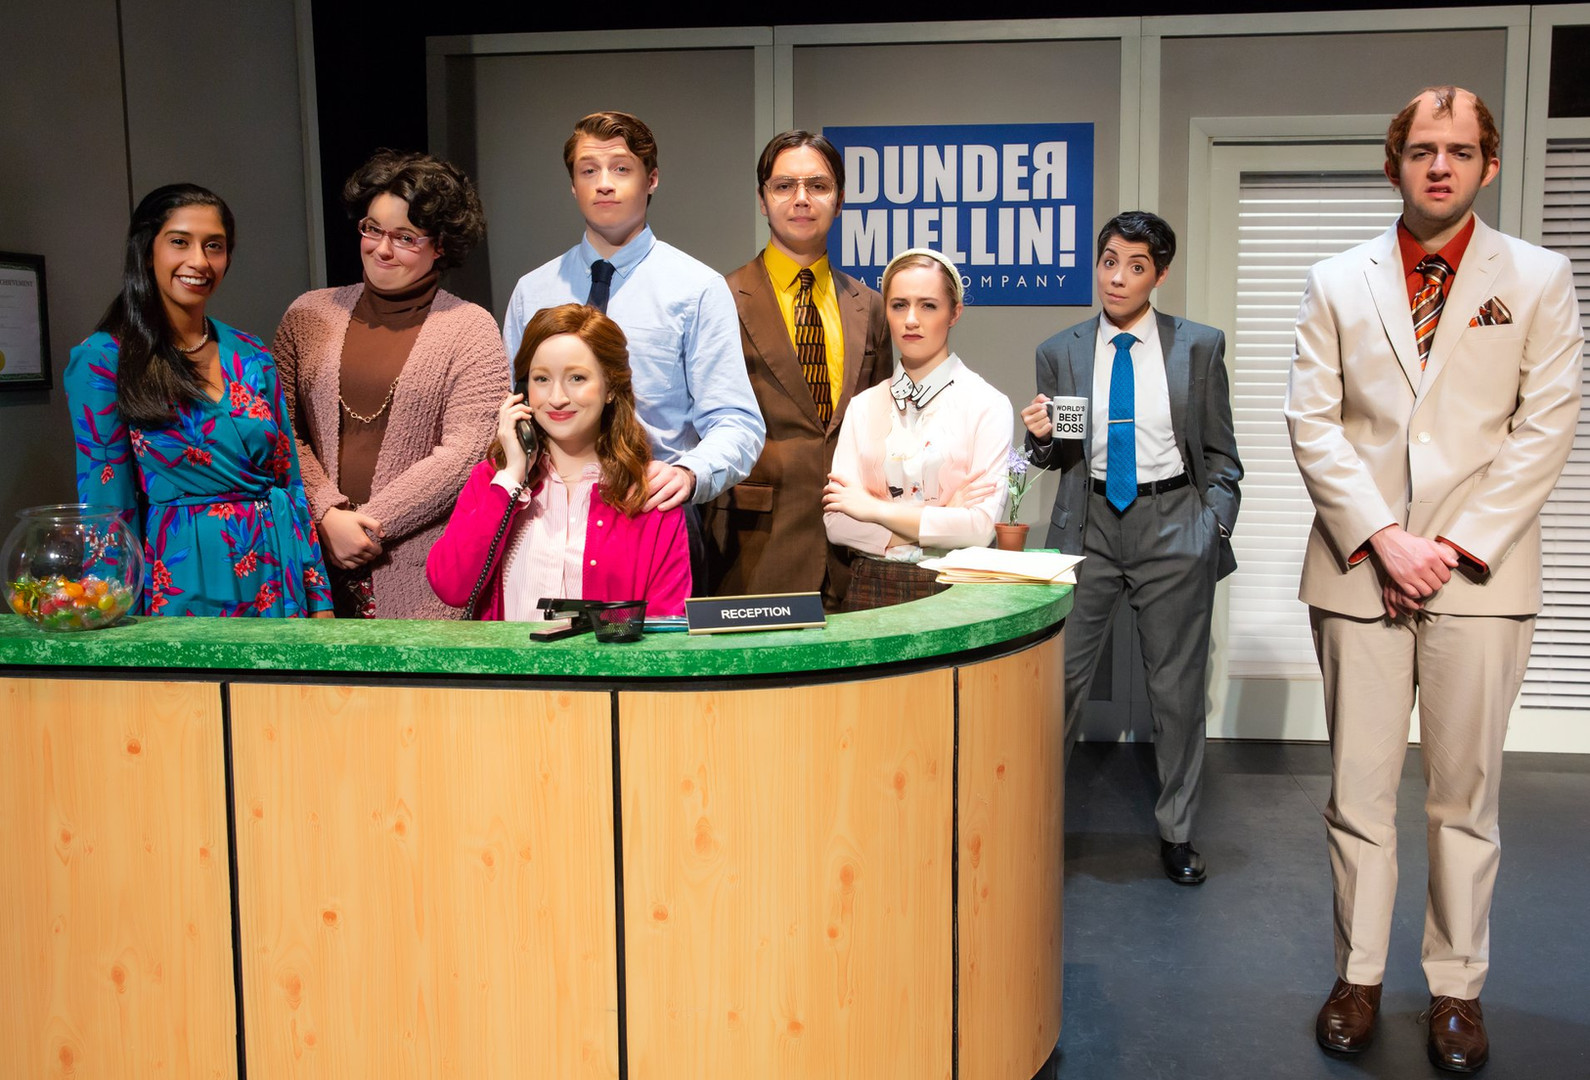 The Cast of The Office! A Musical Parody 2019-2010 North American Tour